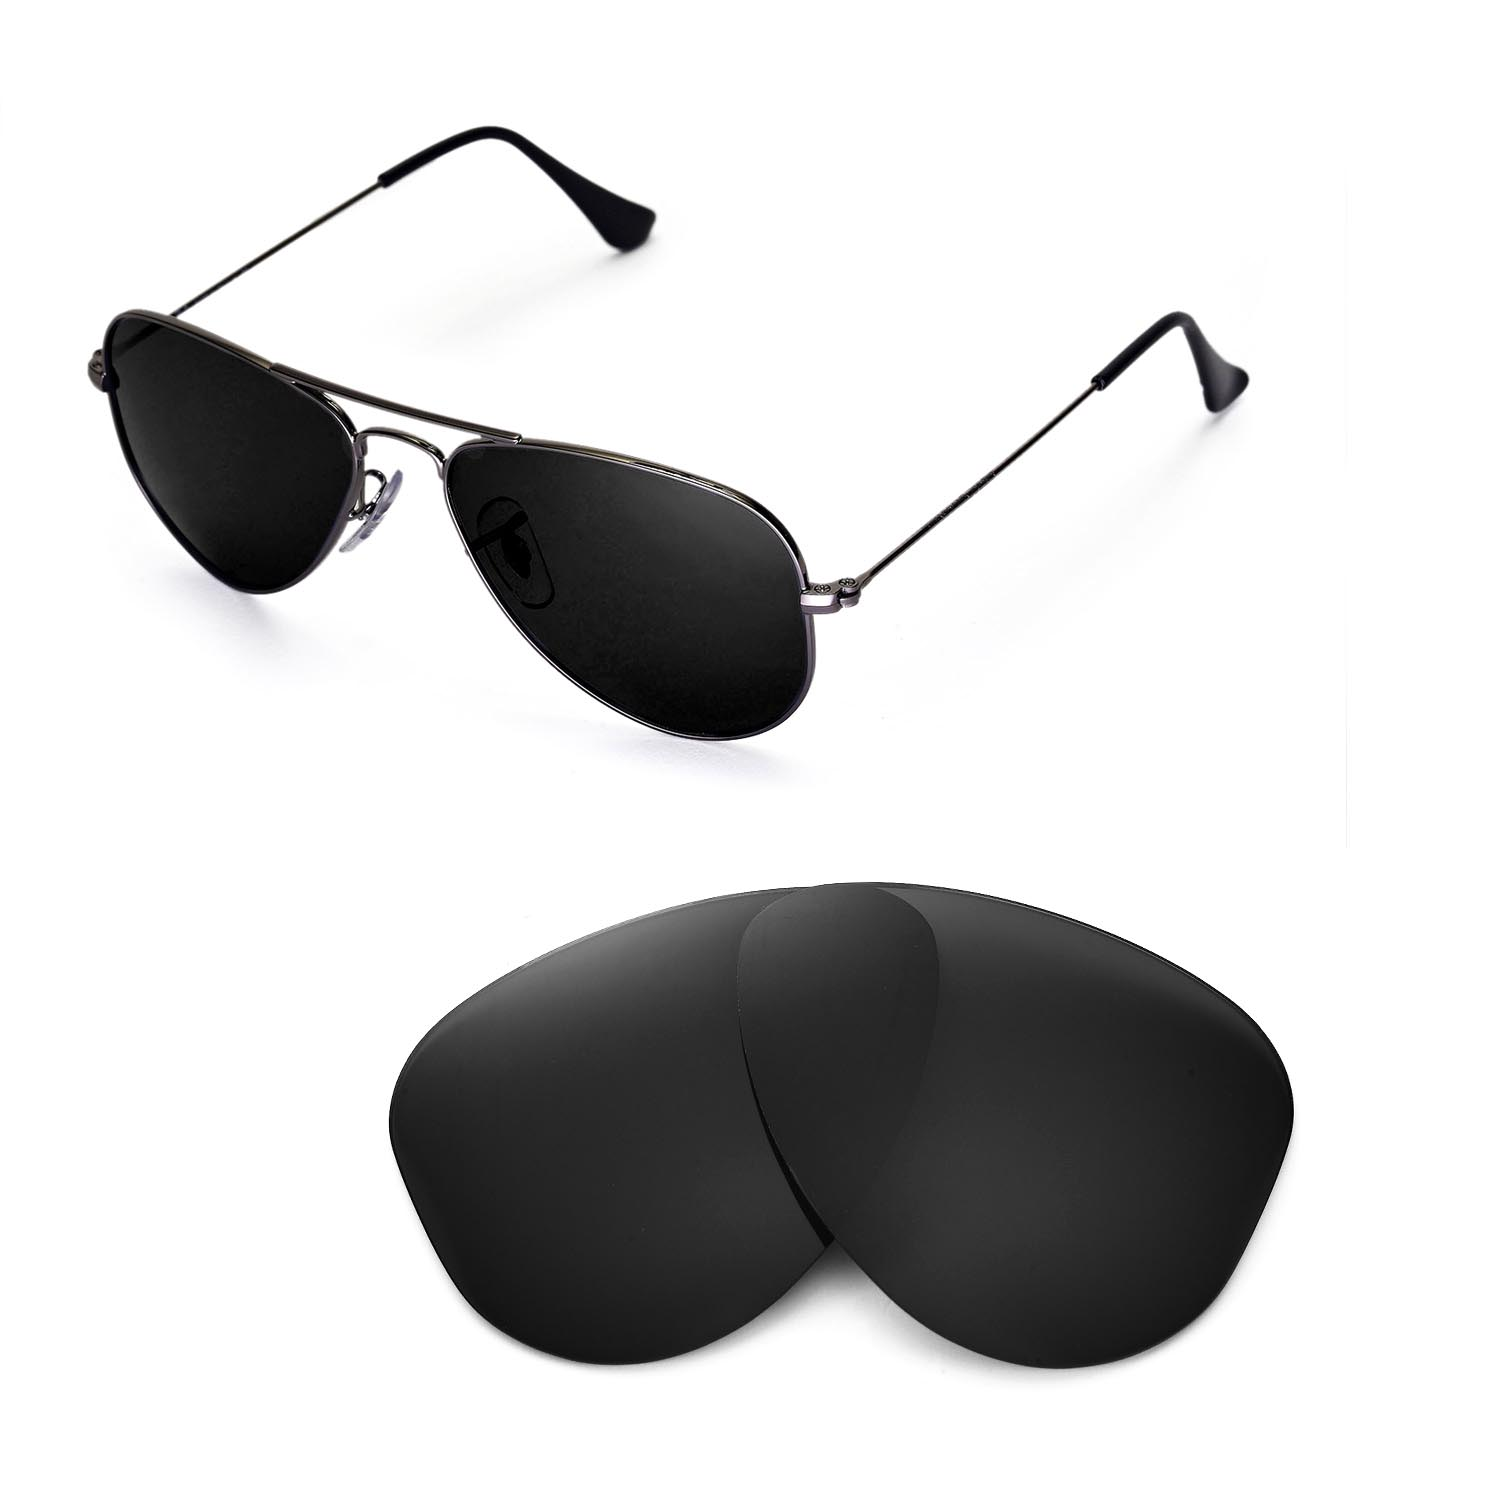 d8605d4b39aea Details about New Walleva Polarized Black Lenses For Ray-Ban Aviator RB3044  Small Metal 52mm